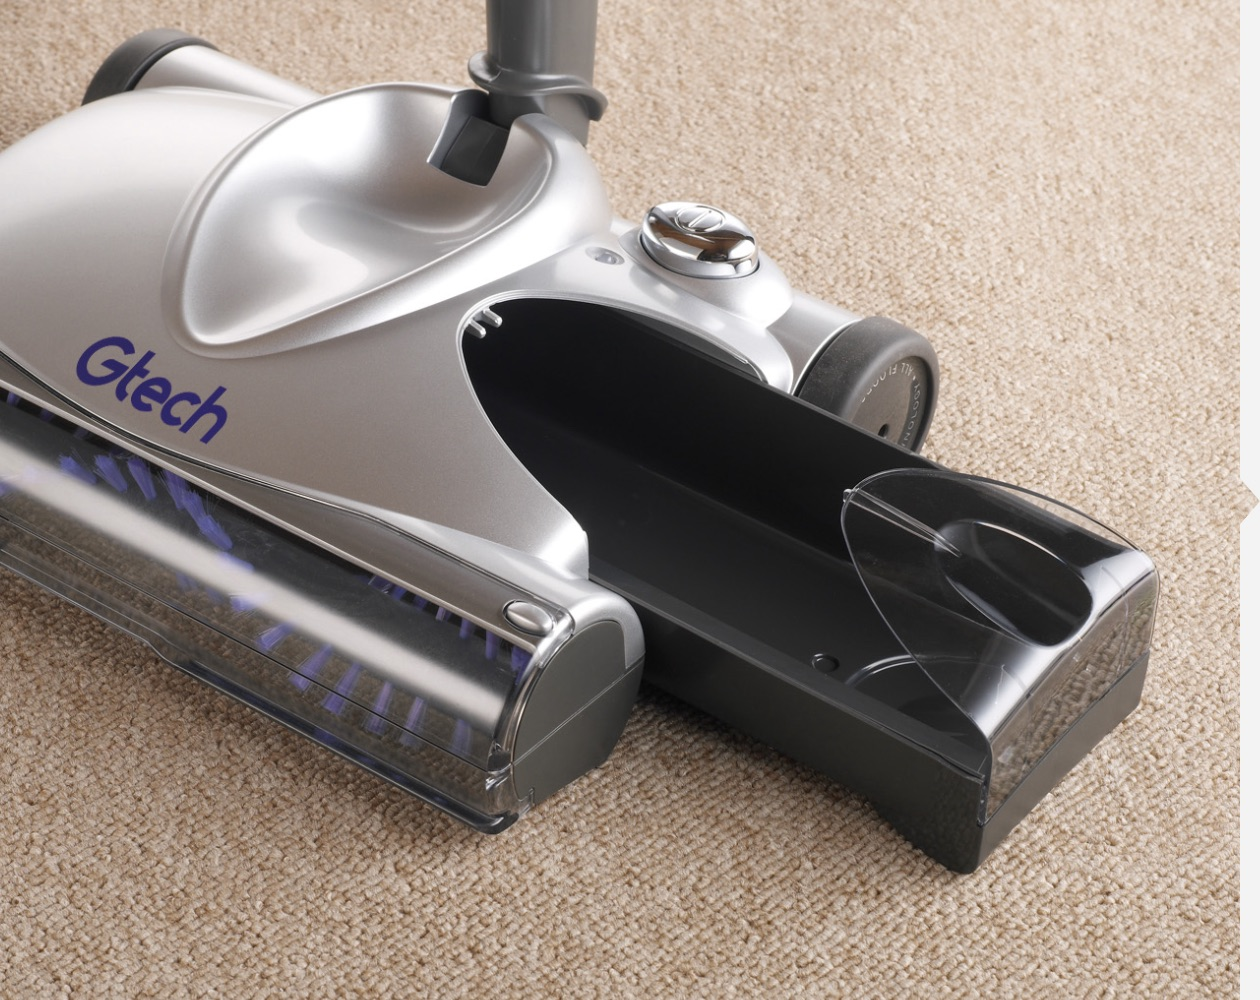 SW02 advanced carpet sweeper visible results